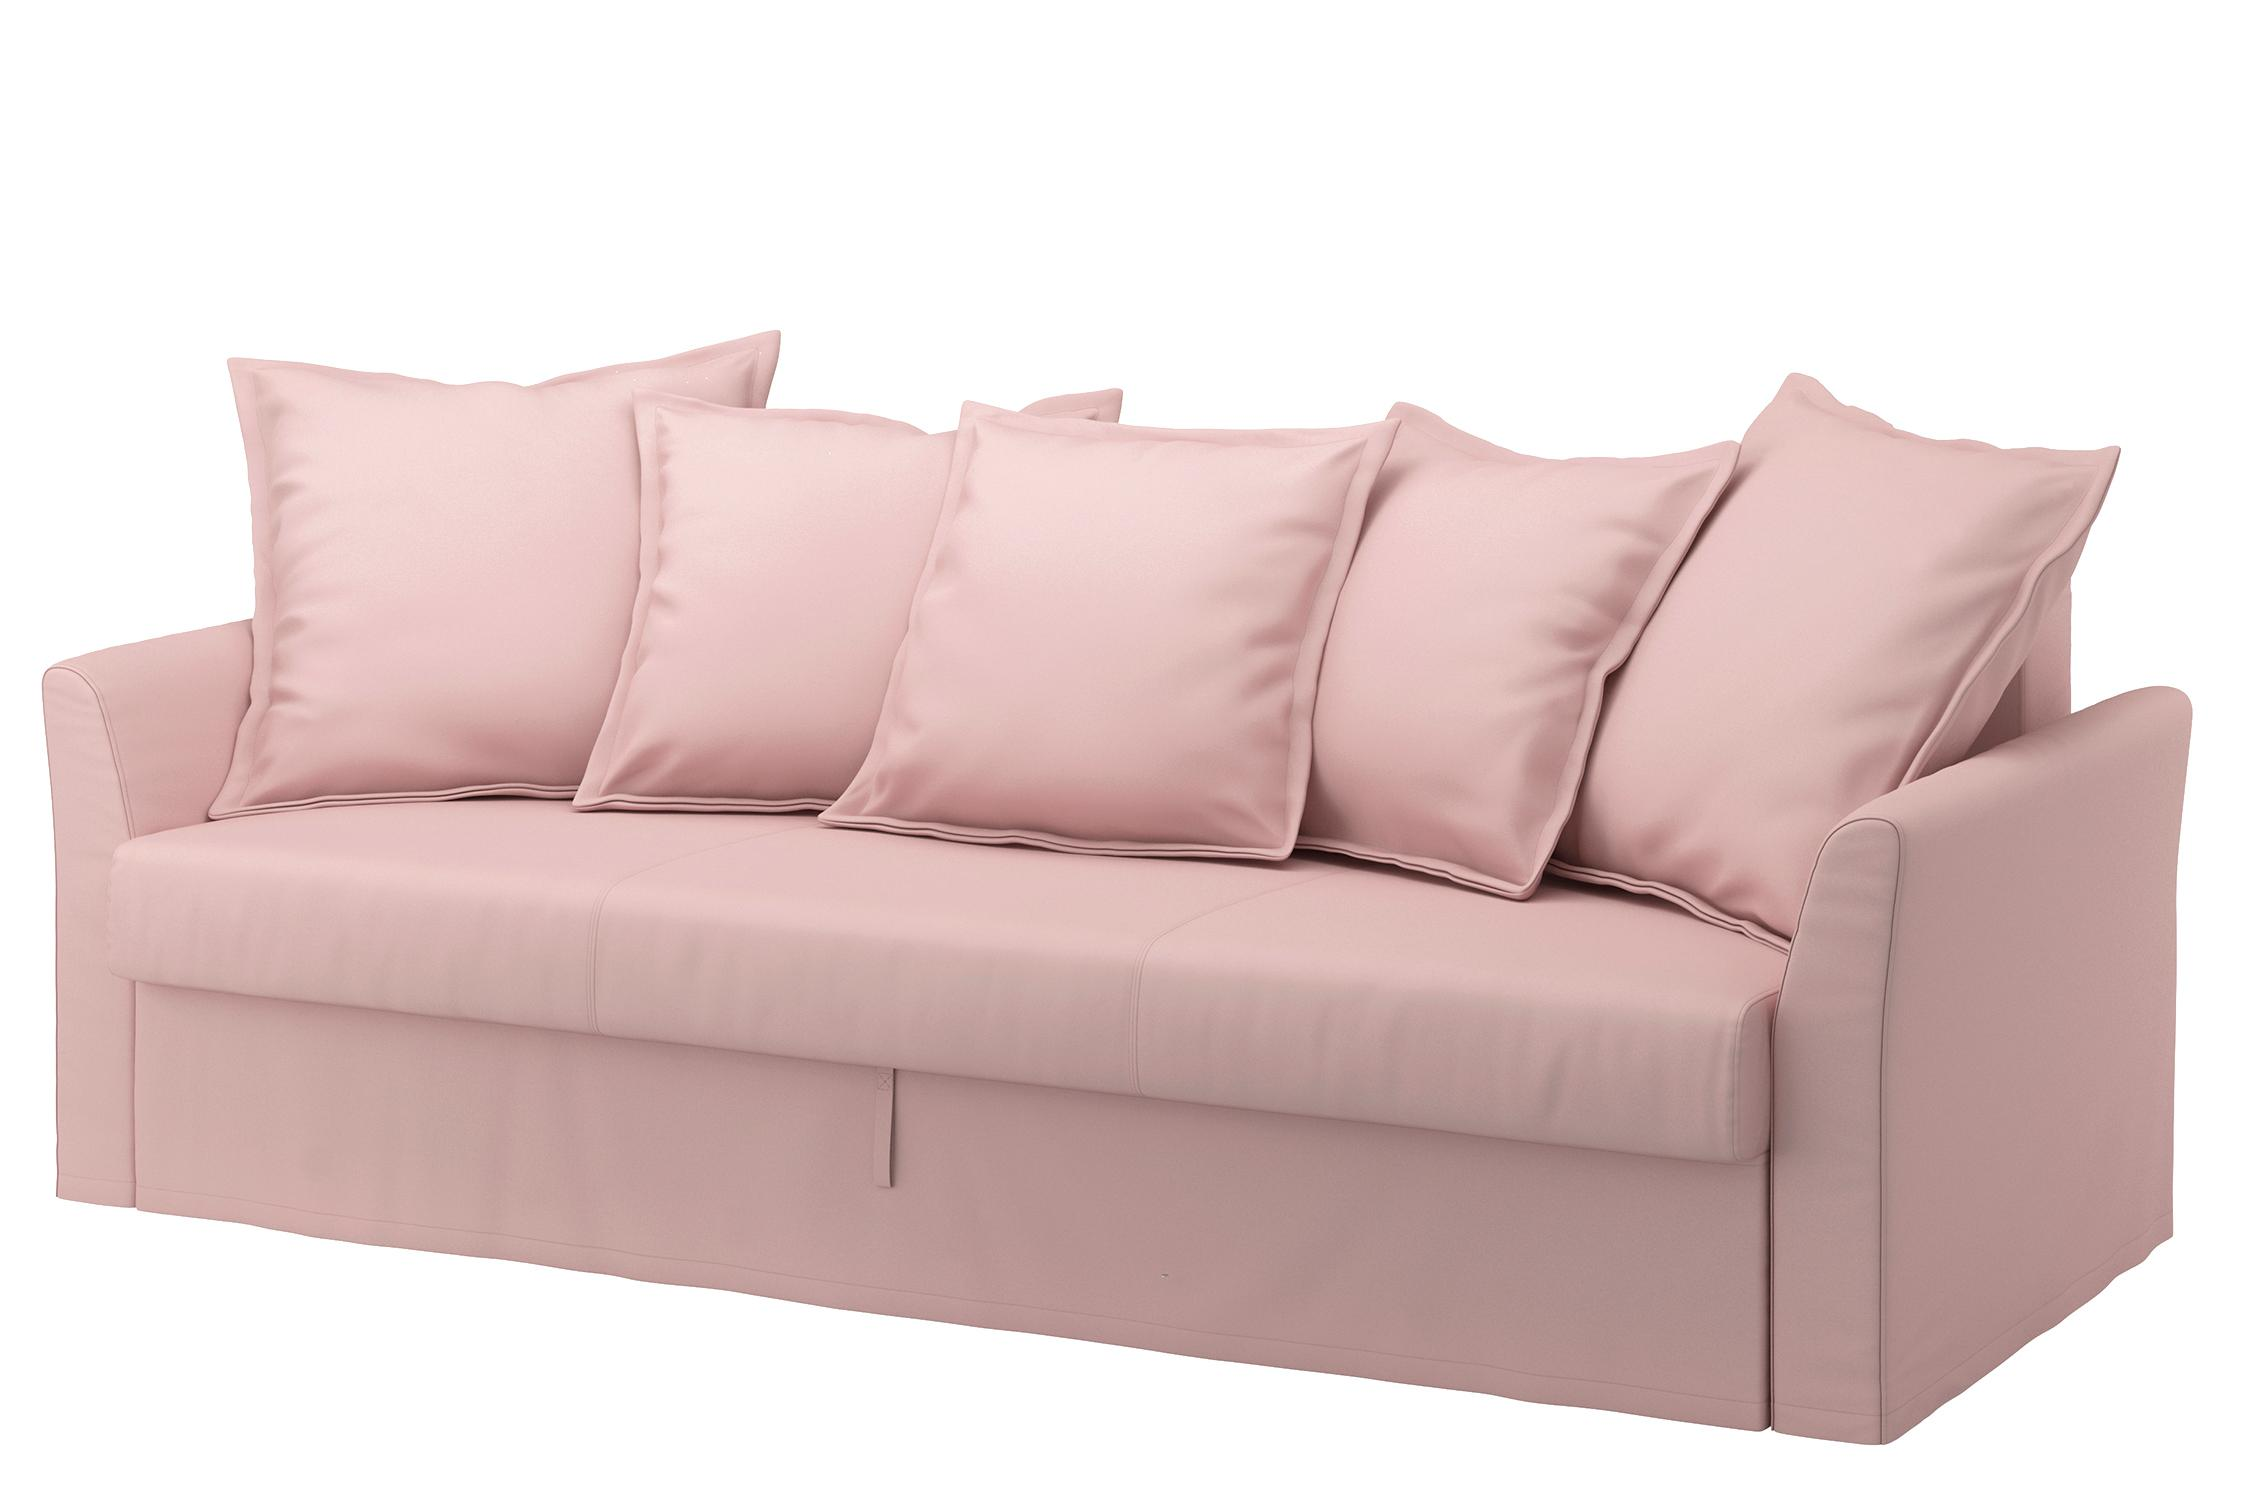 pink sofas ikea sofa bed ransta dark grey top 10 home the sunday times save is disabled